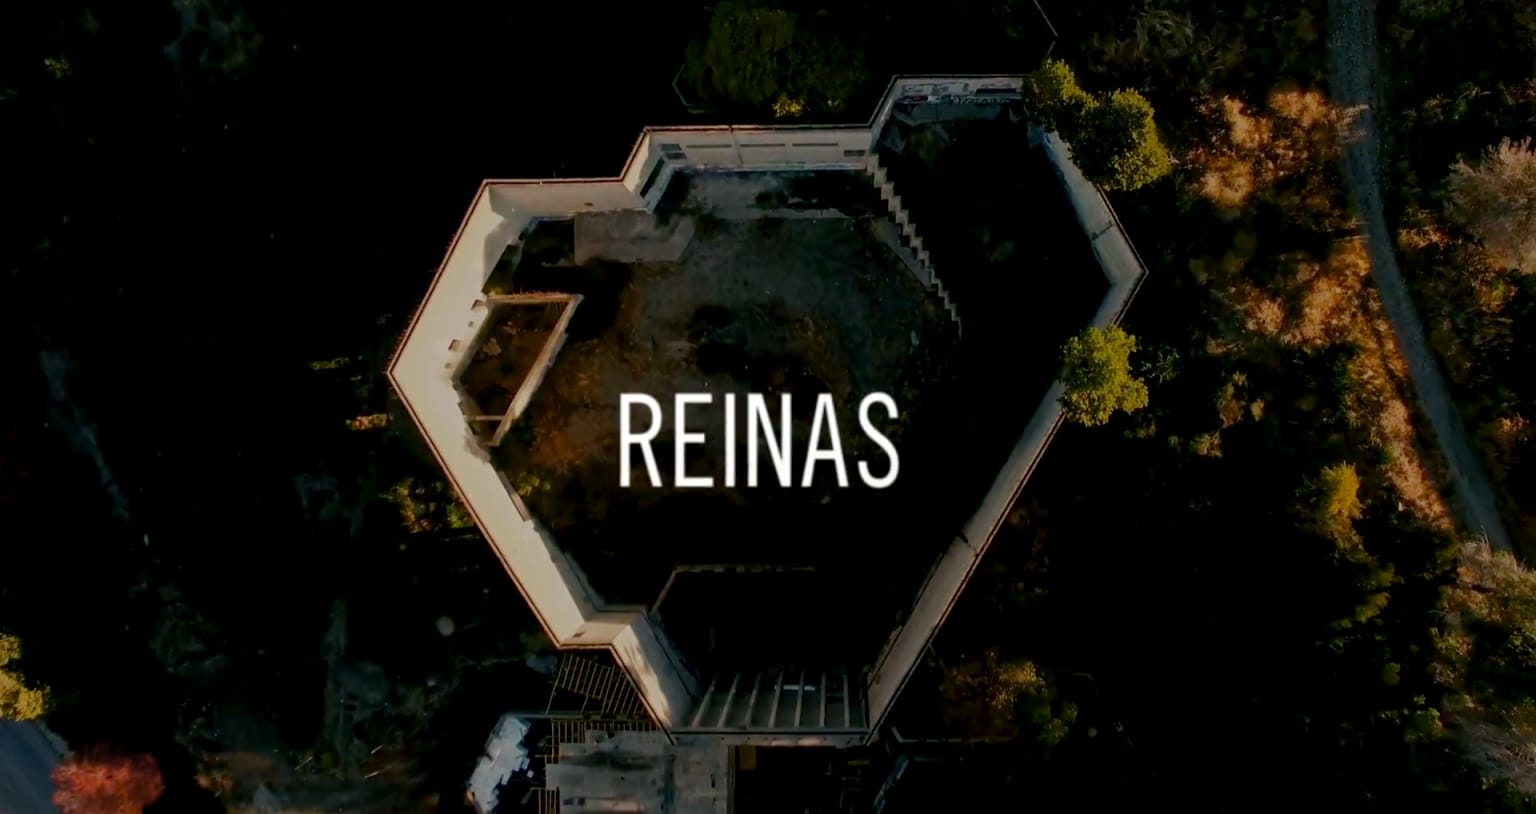 REINAS (TV Miniseries): Selected Cuts